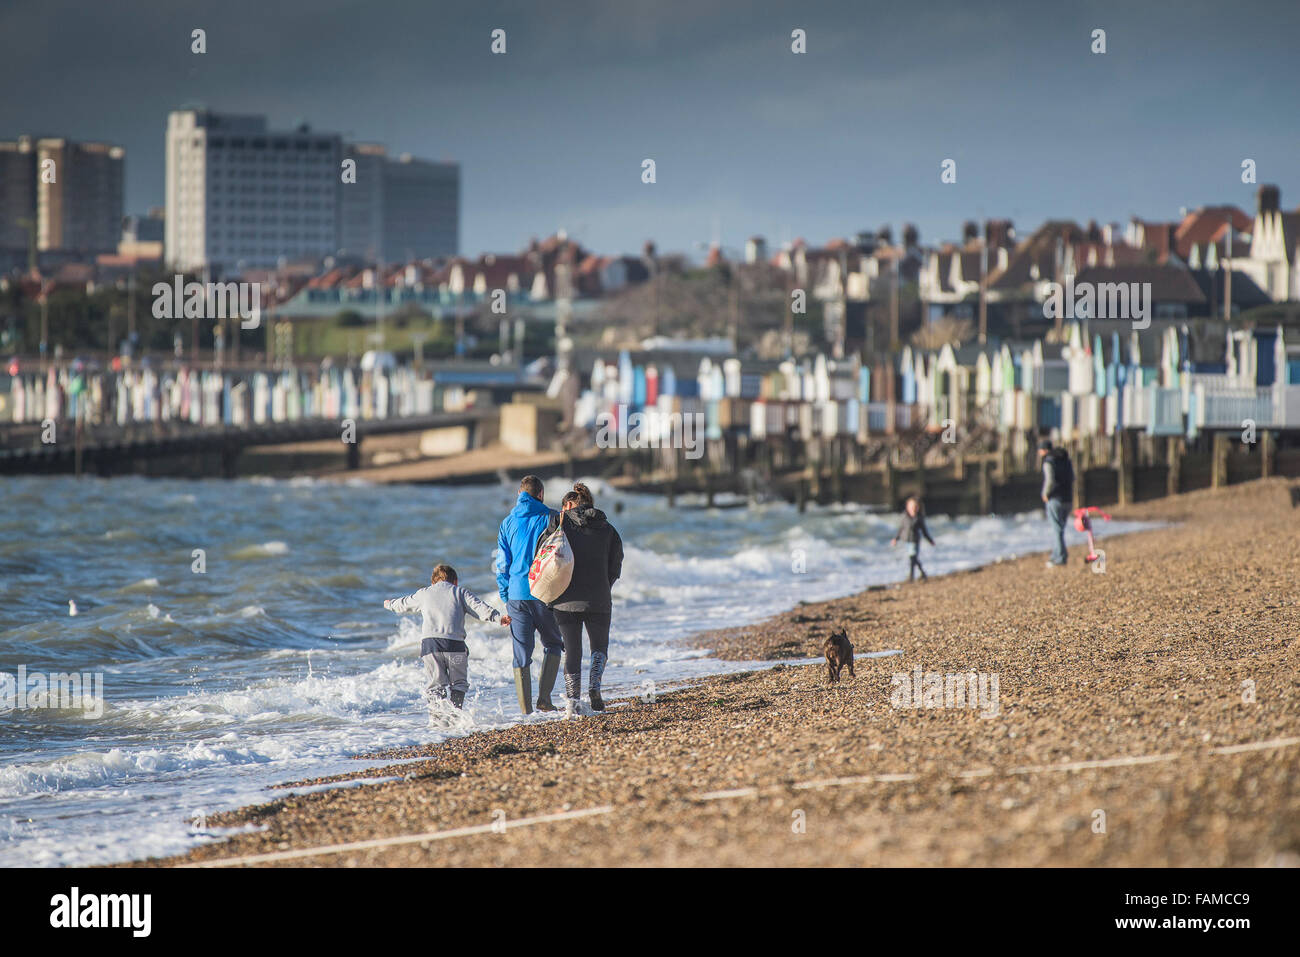 A family walk along the shoreline of Thorpe Bay beach in Southend on Sea, Essex, UK. - Stock Image